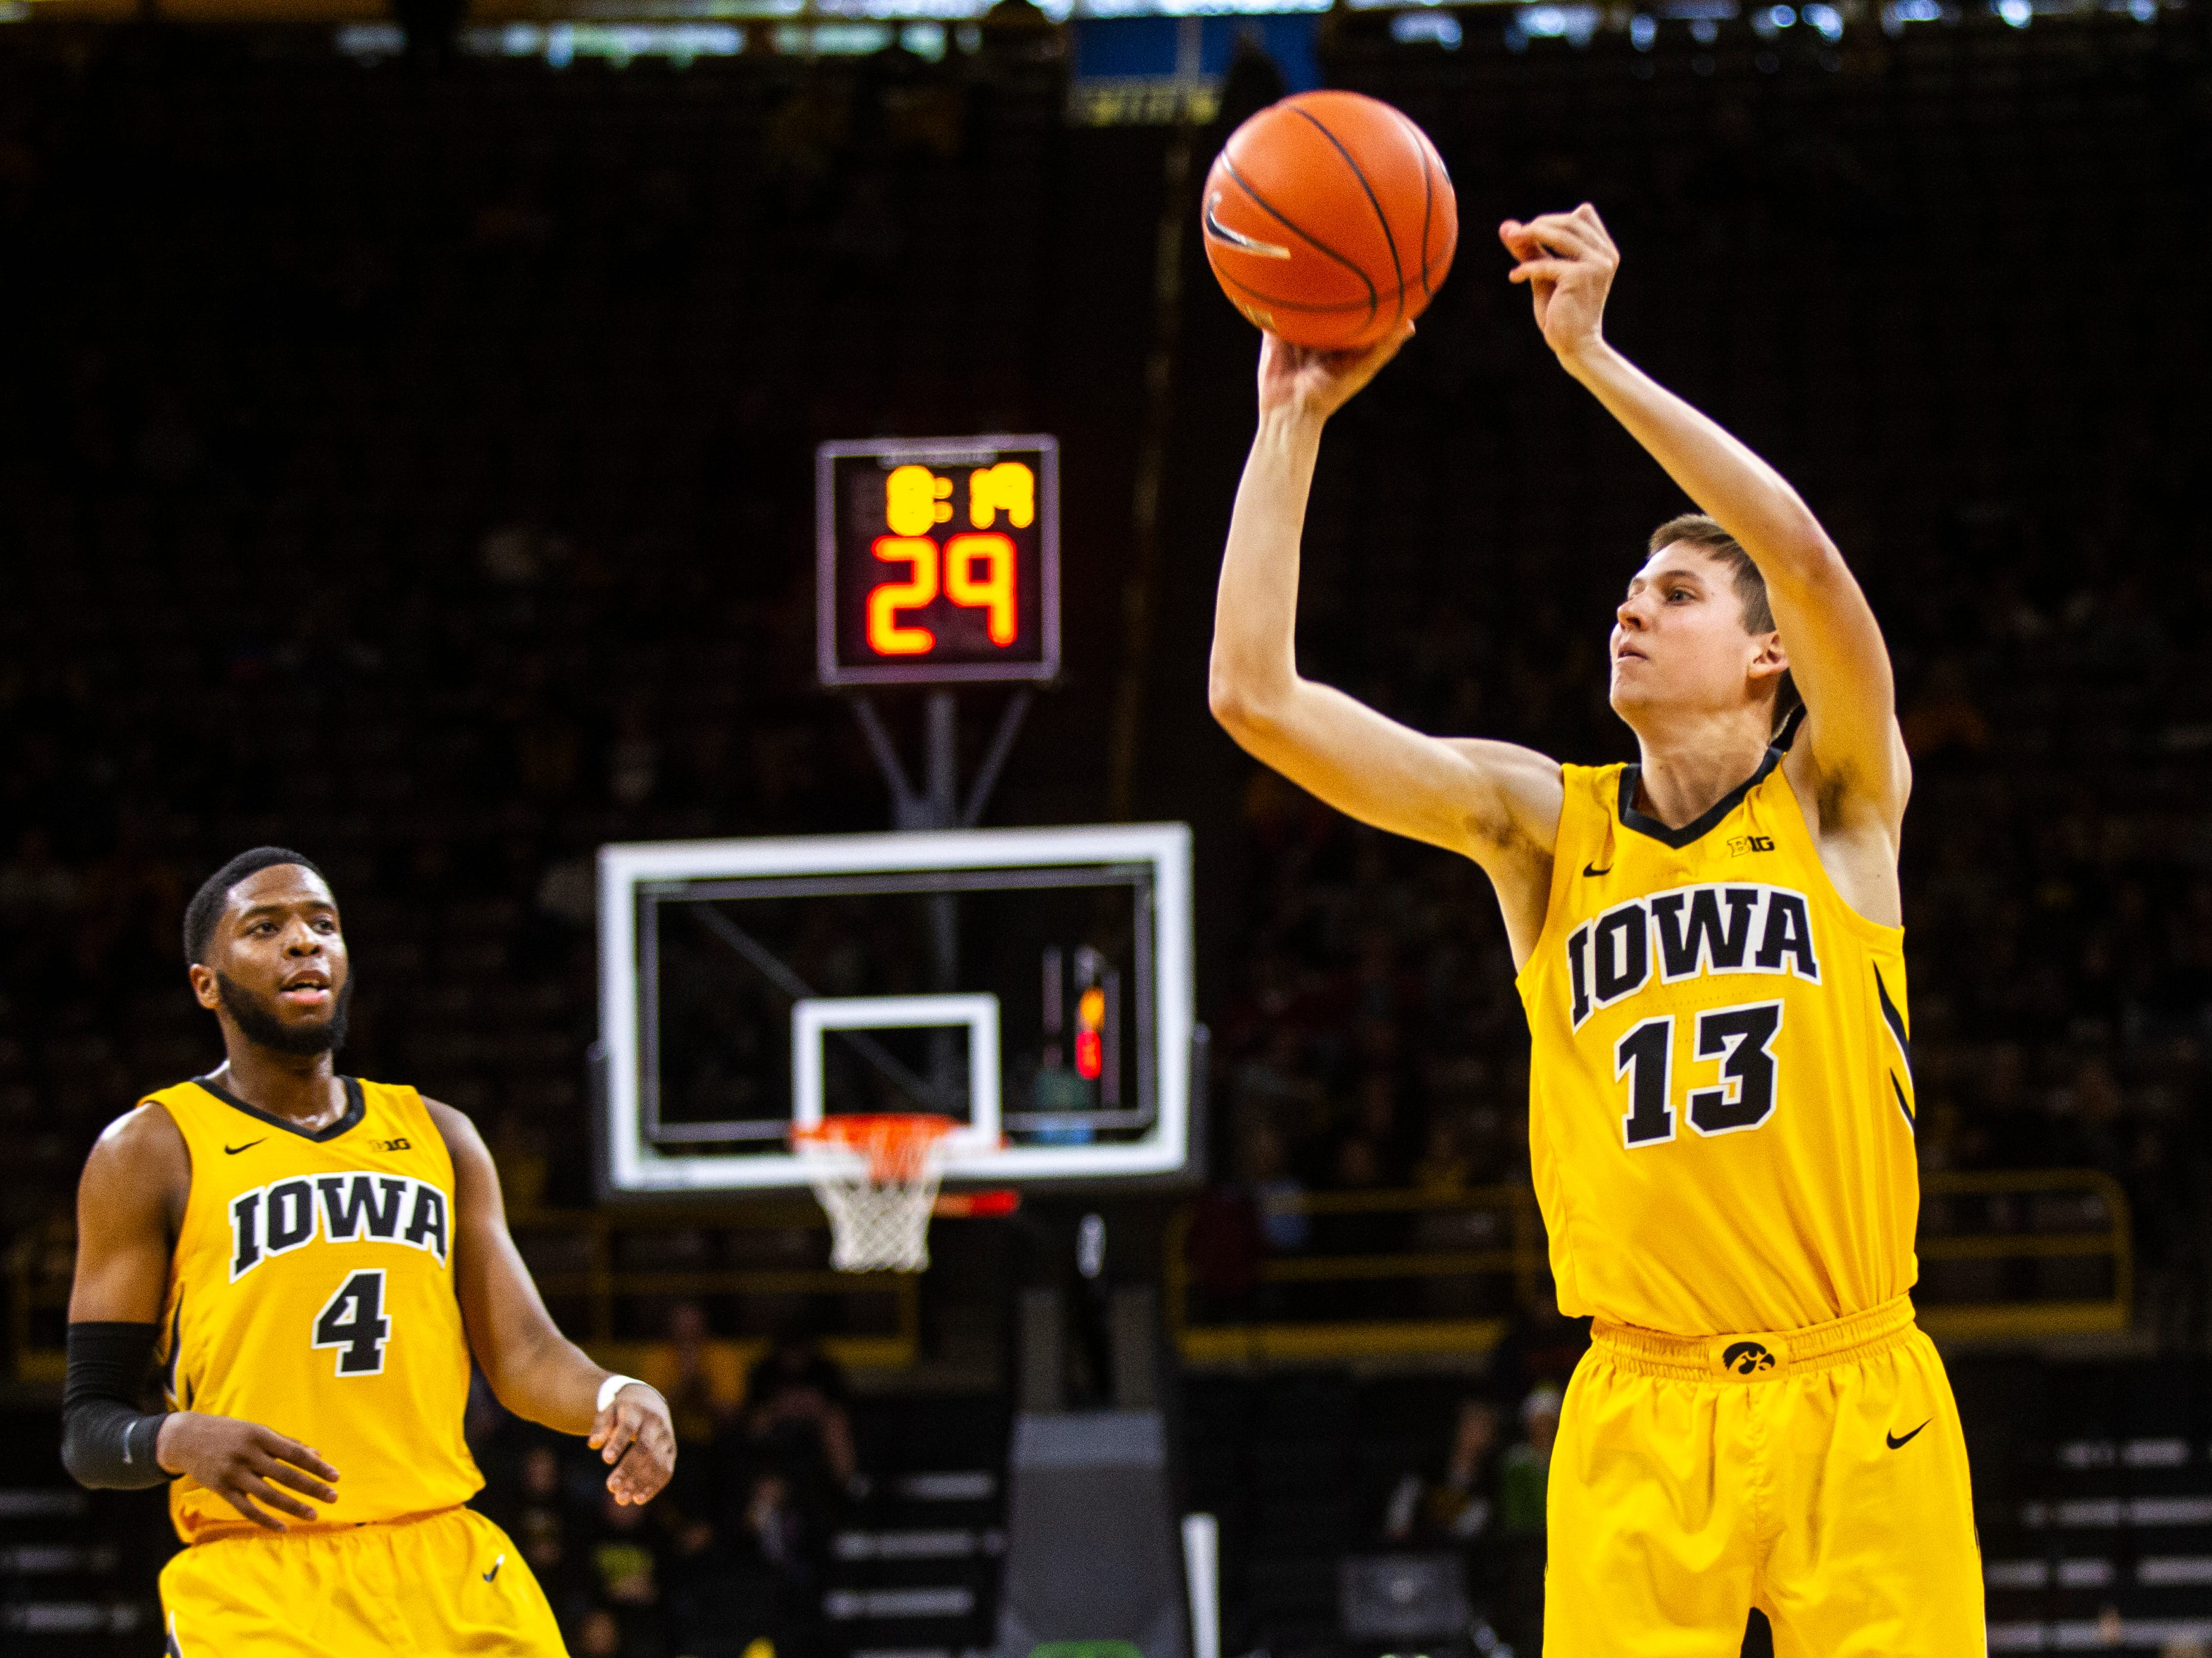 Iowa guard Austin Ash (13) shoots a 3-point basket as Iowa guard Isaiah Moss (4) looks on during a NCAA men's basketball game on Saturday, Dec. 22, 2018, at Carver-Hawkeye Arena in Iowa City.